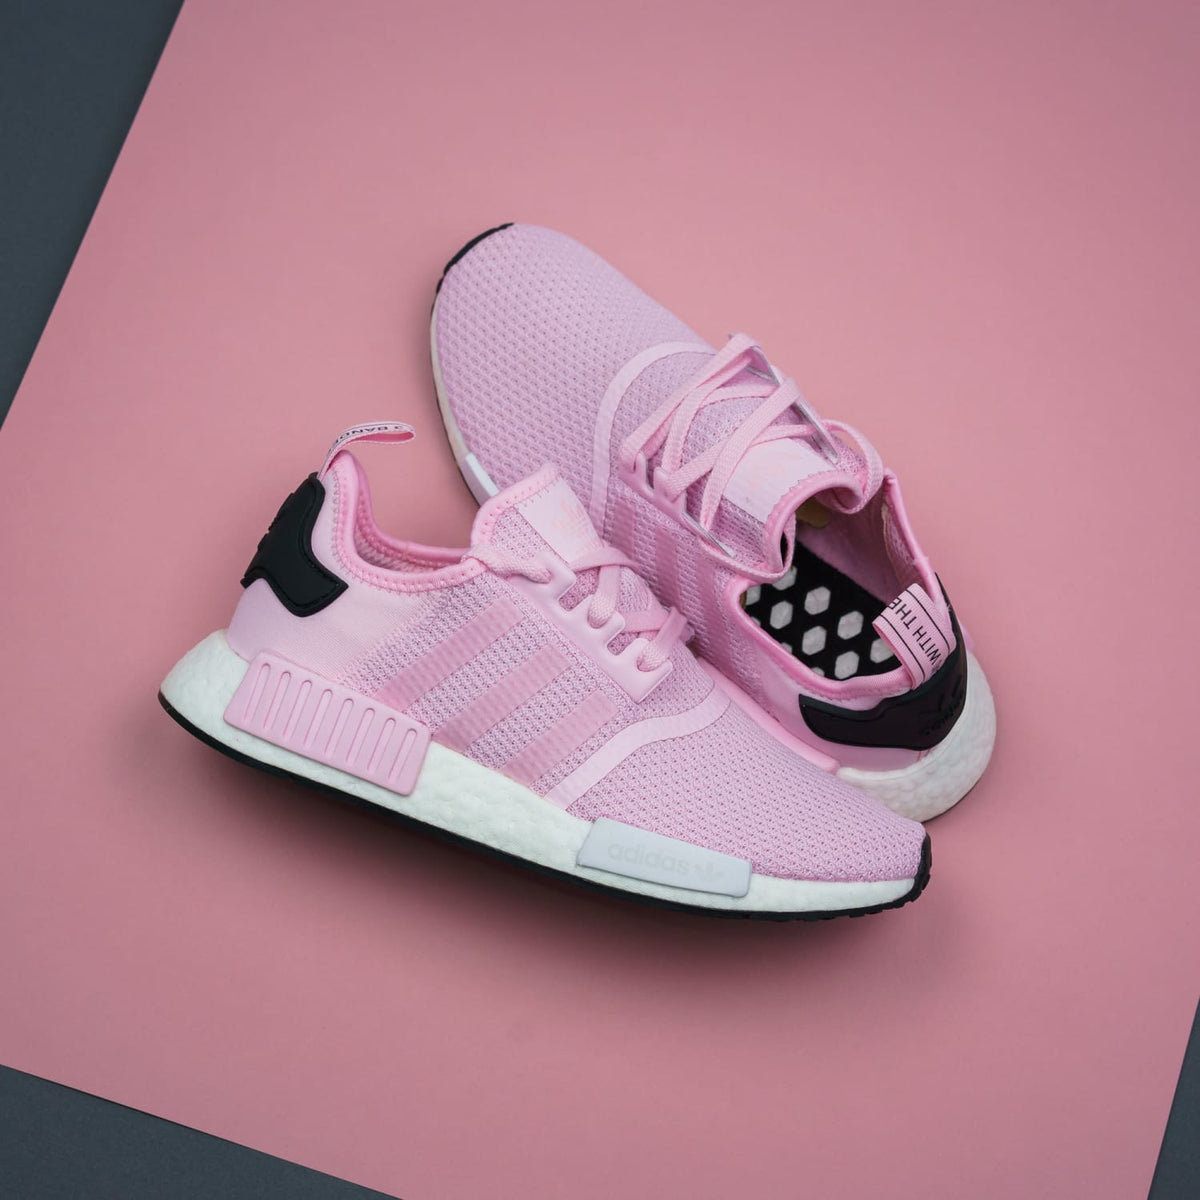 adidas NMD Pink Grey Womens Release Info   SneakerNews.com